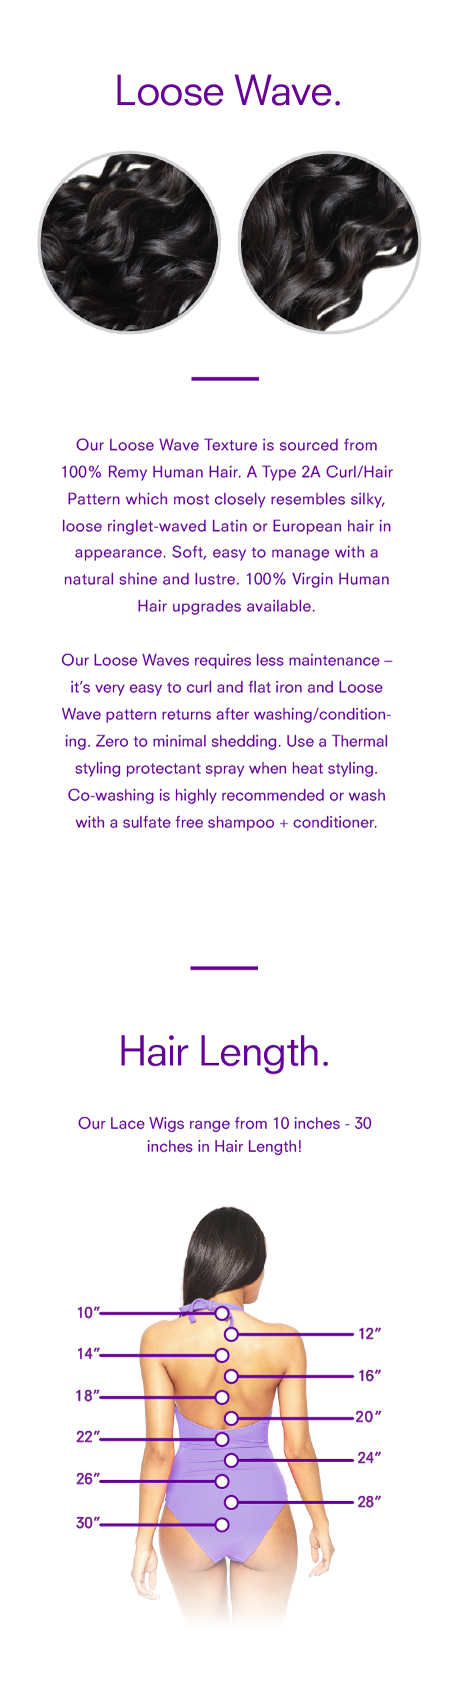 <p>Our <strong>Loose WaveTexture Lace Wig</strong> is sourced from 100% Remy Human Hair. A <em>Type 2A Curl/Hair Pattern</em> which most closely resembles silky, loose ringlet-waved Latin or European hair in appearance. Soft, easy to manage with a natural shine and lustre.<em>100% Virgin Human Hair upgrades available.</em></p> <p>Our Loose Waves requires less maintenance – it's very easy to curl and flat iron and Loose Wave pattern returns after washing/conditioning. Zero to minimal shedding. Use a Thermal styling protectant spray when heat styling. Co-washing is highly recommended or wash with a sulfate free shampoo + conditioner.</p>